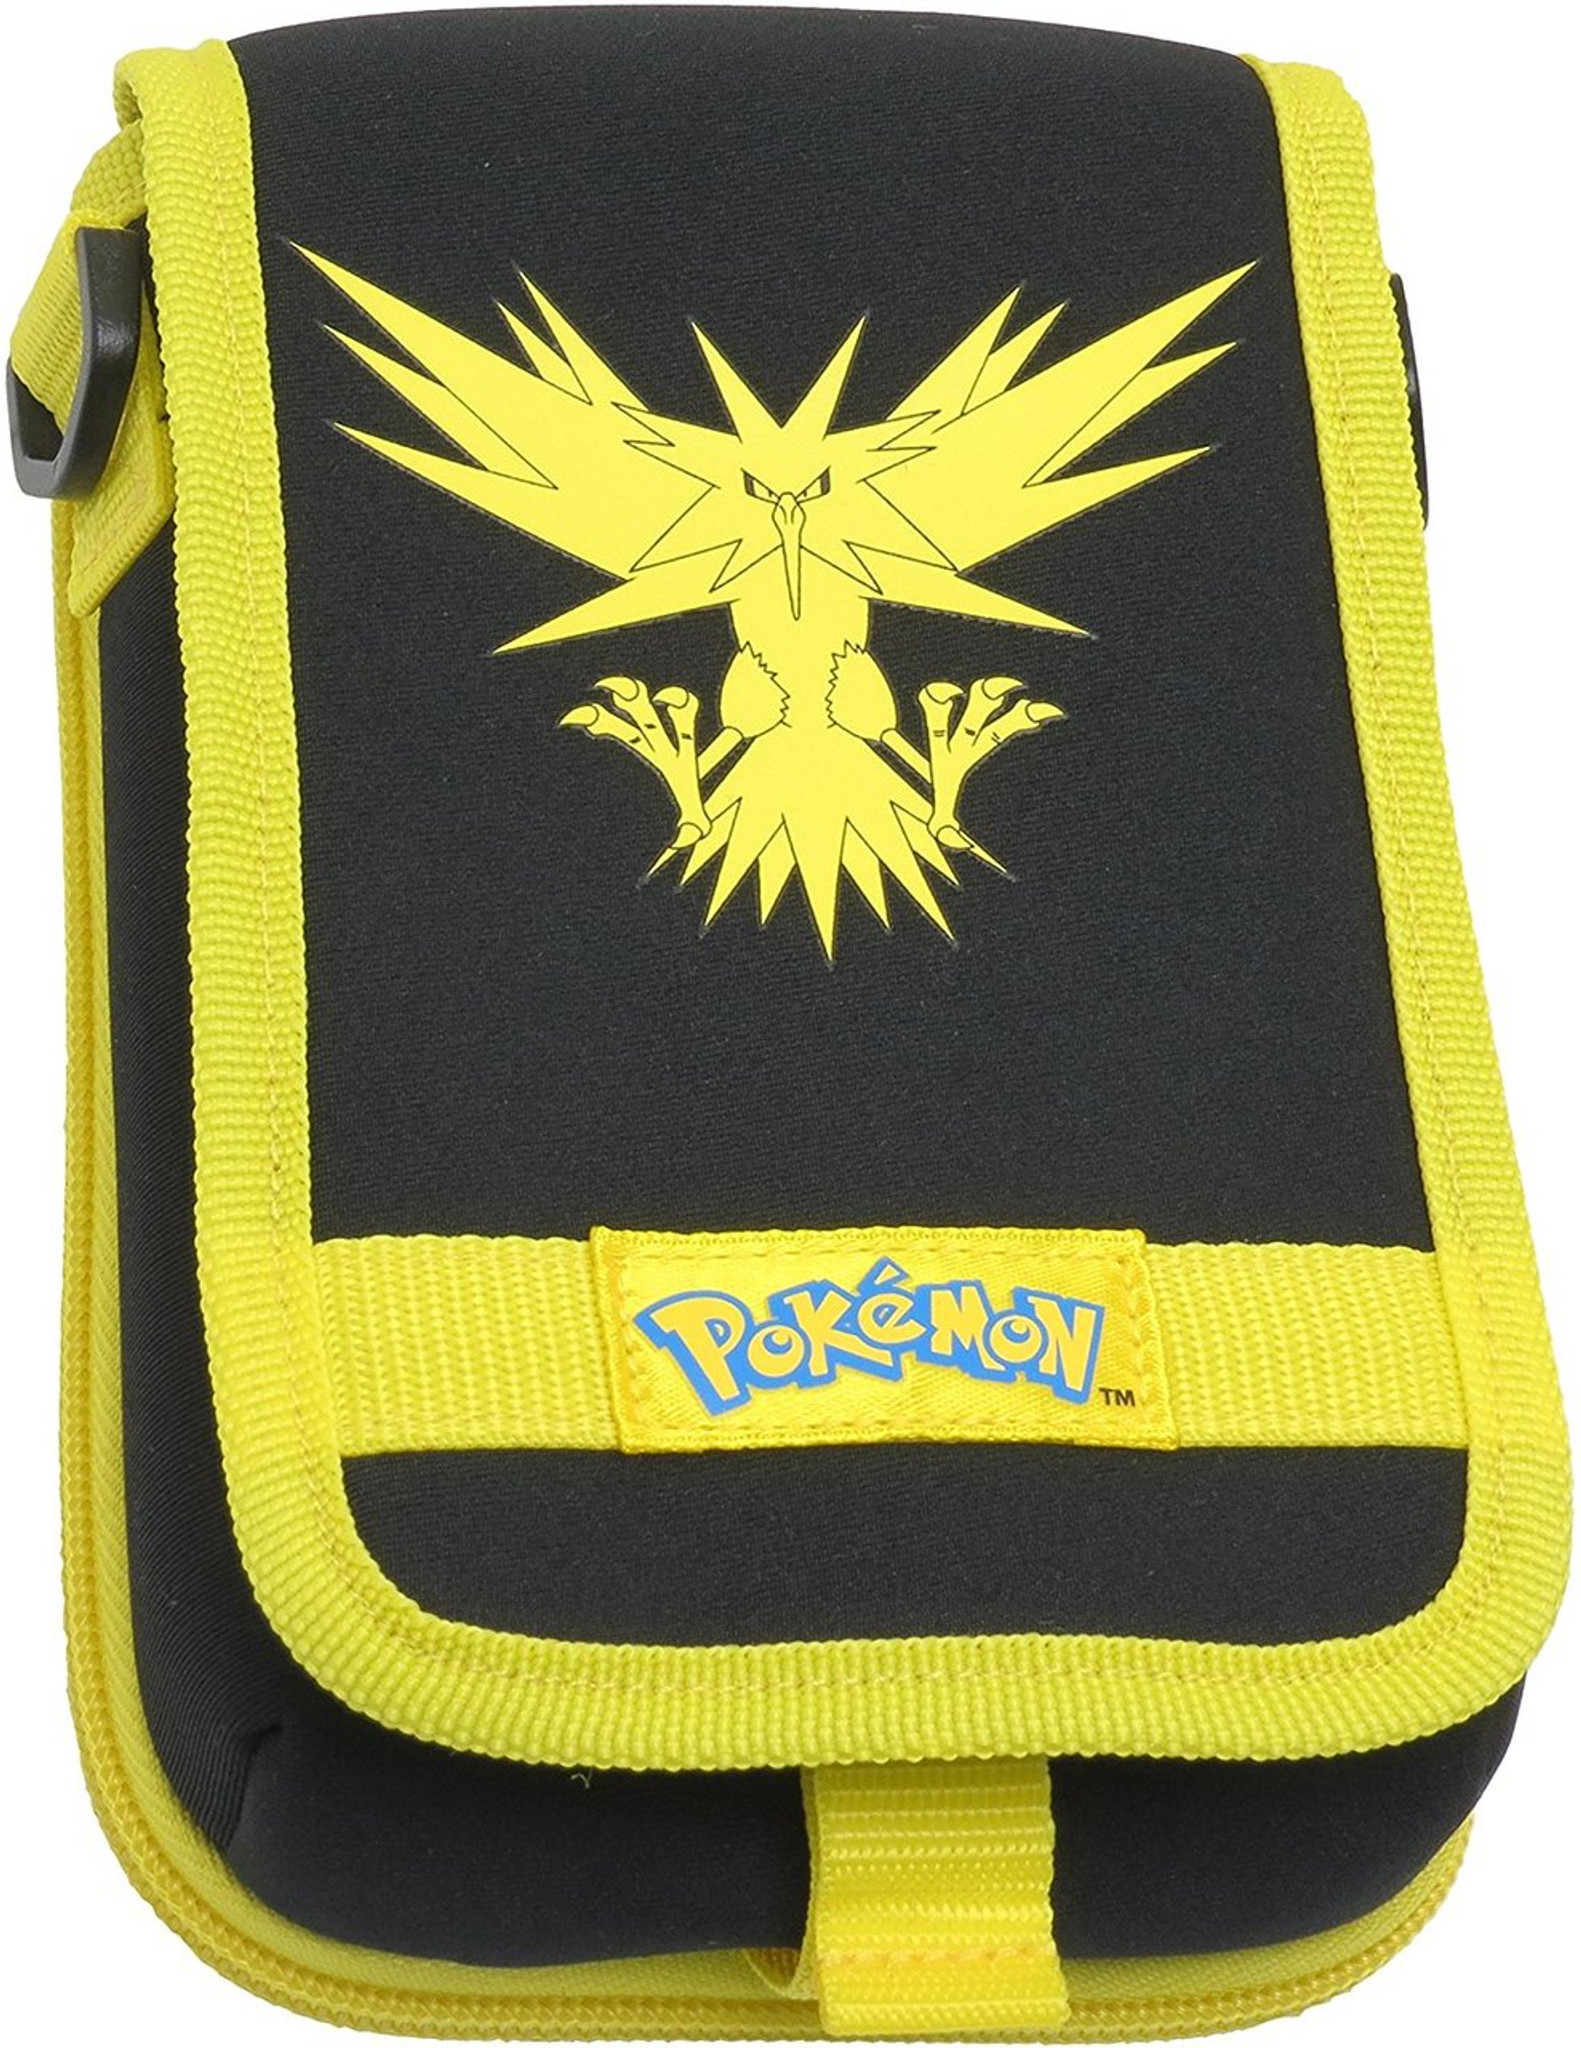 Pokemon Zapdos Travel Pouch - Yellow for Nintendo 3DS XL